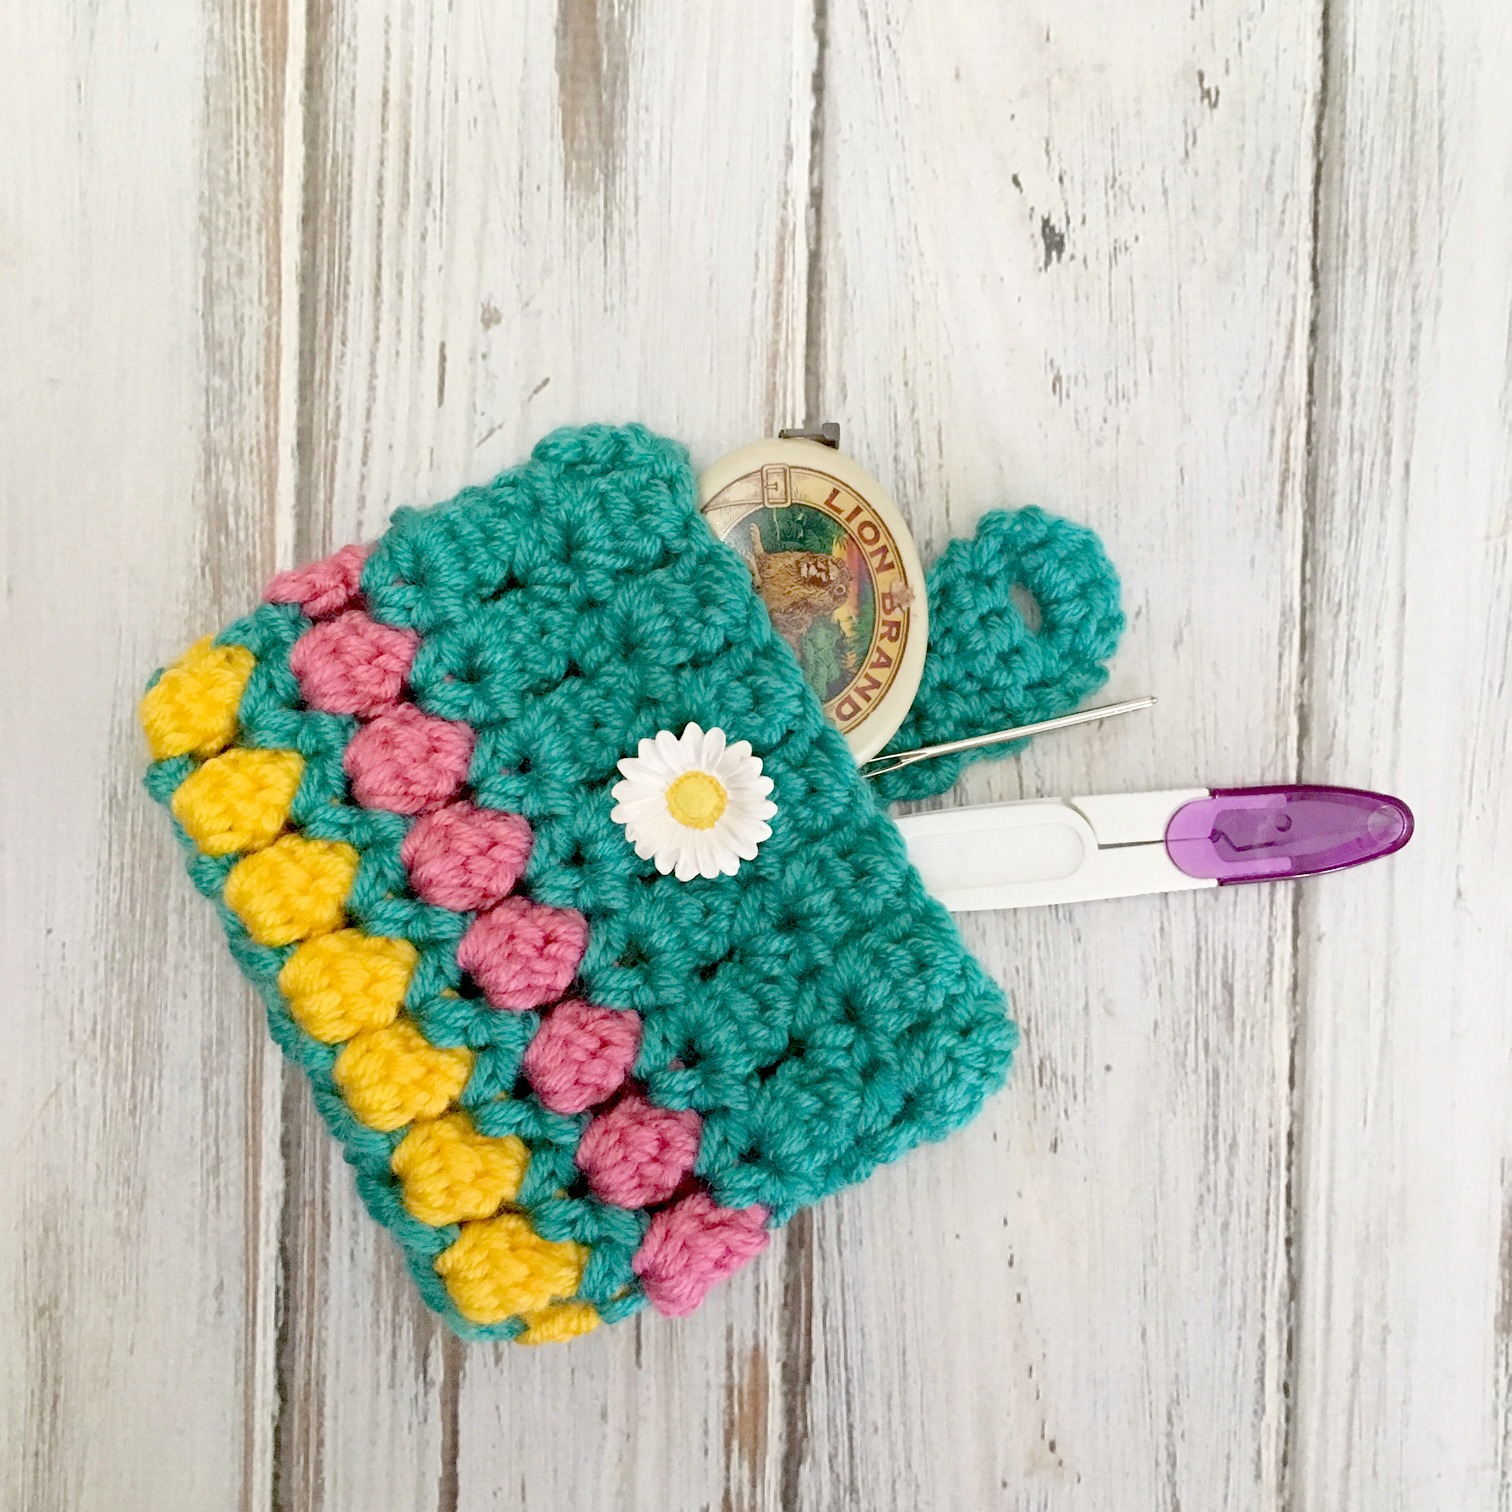 Summer Crochet Pattern Summer Fun Coin Purse Free Crochet Pattern Love Life Yarn